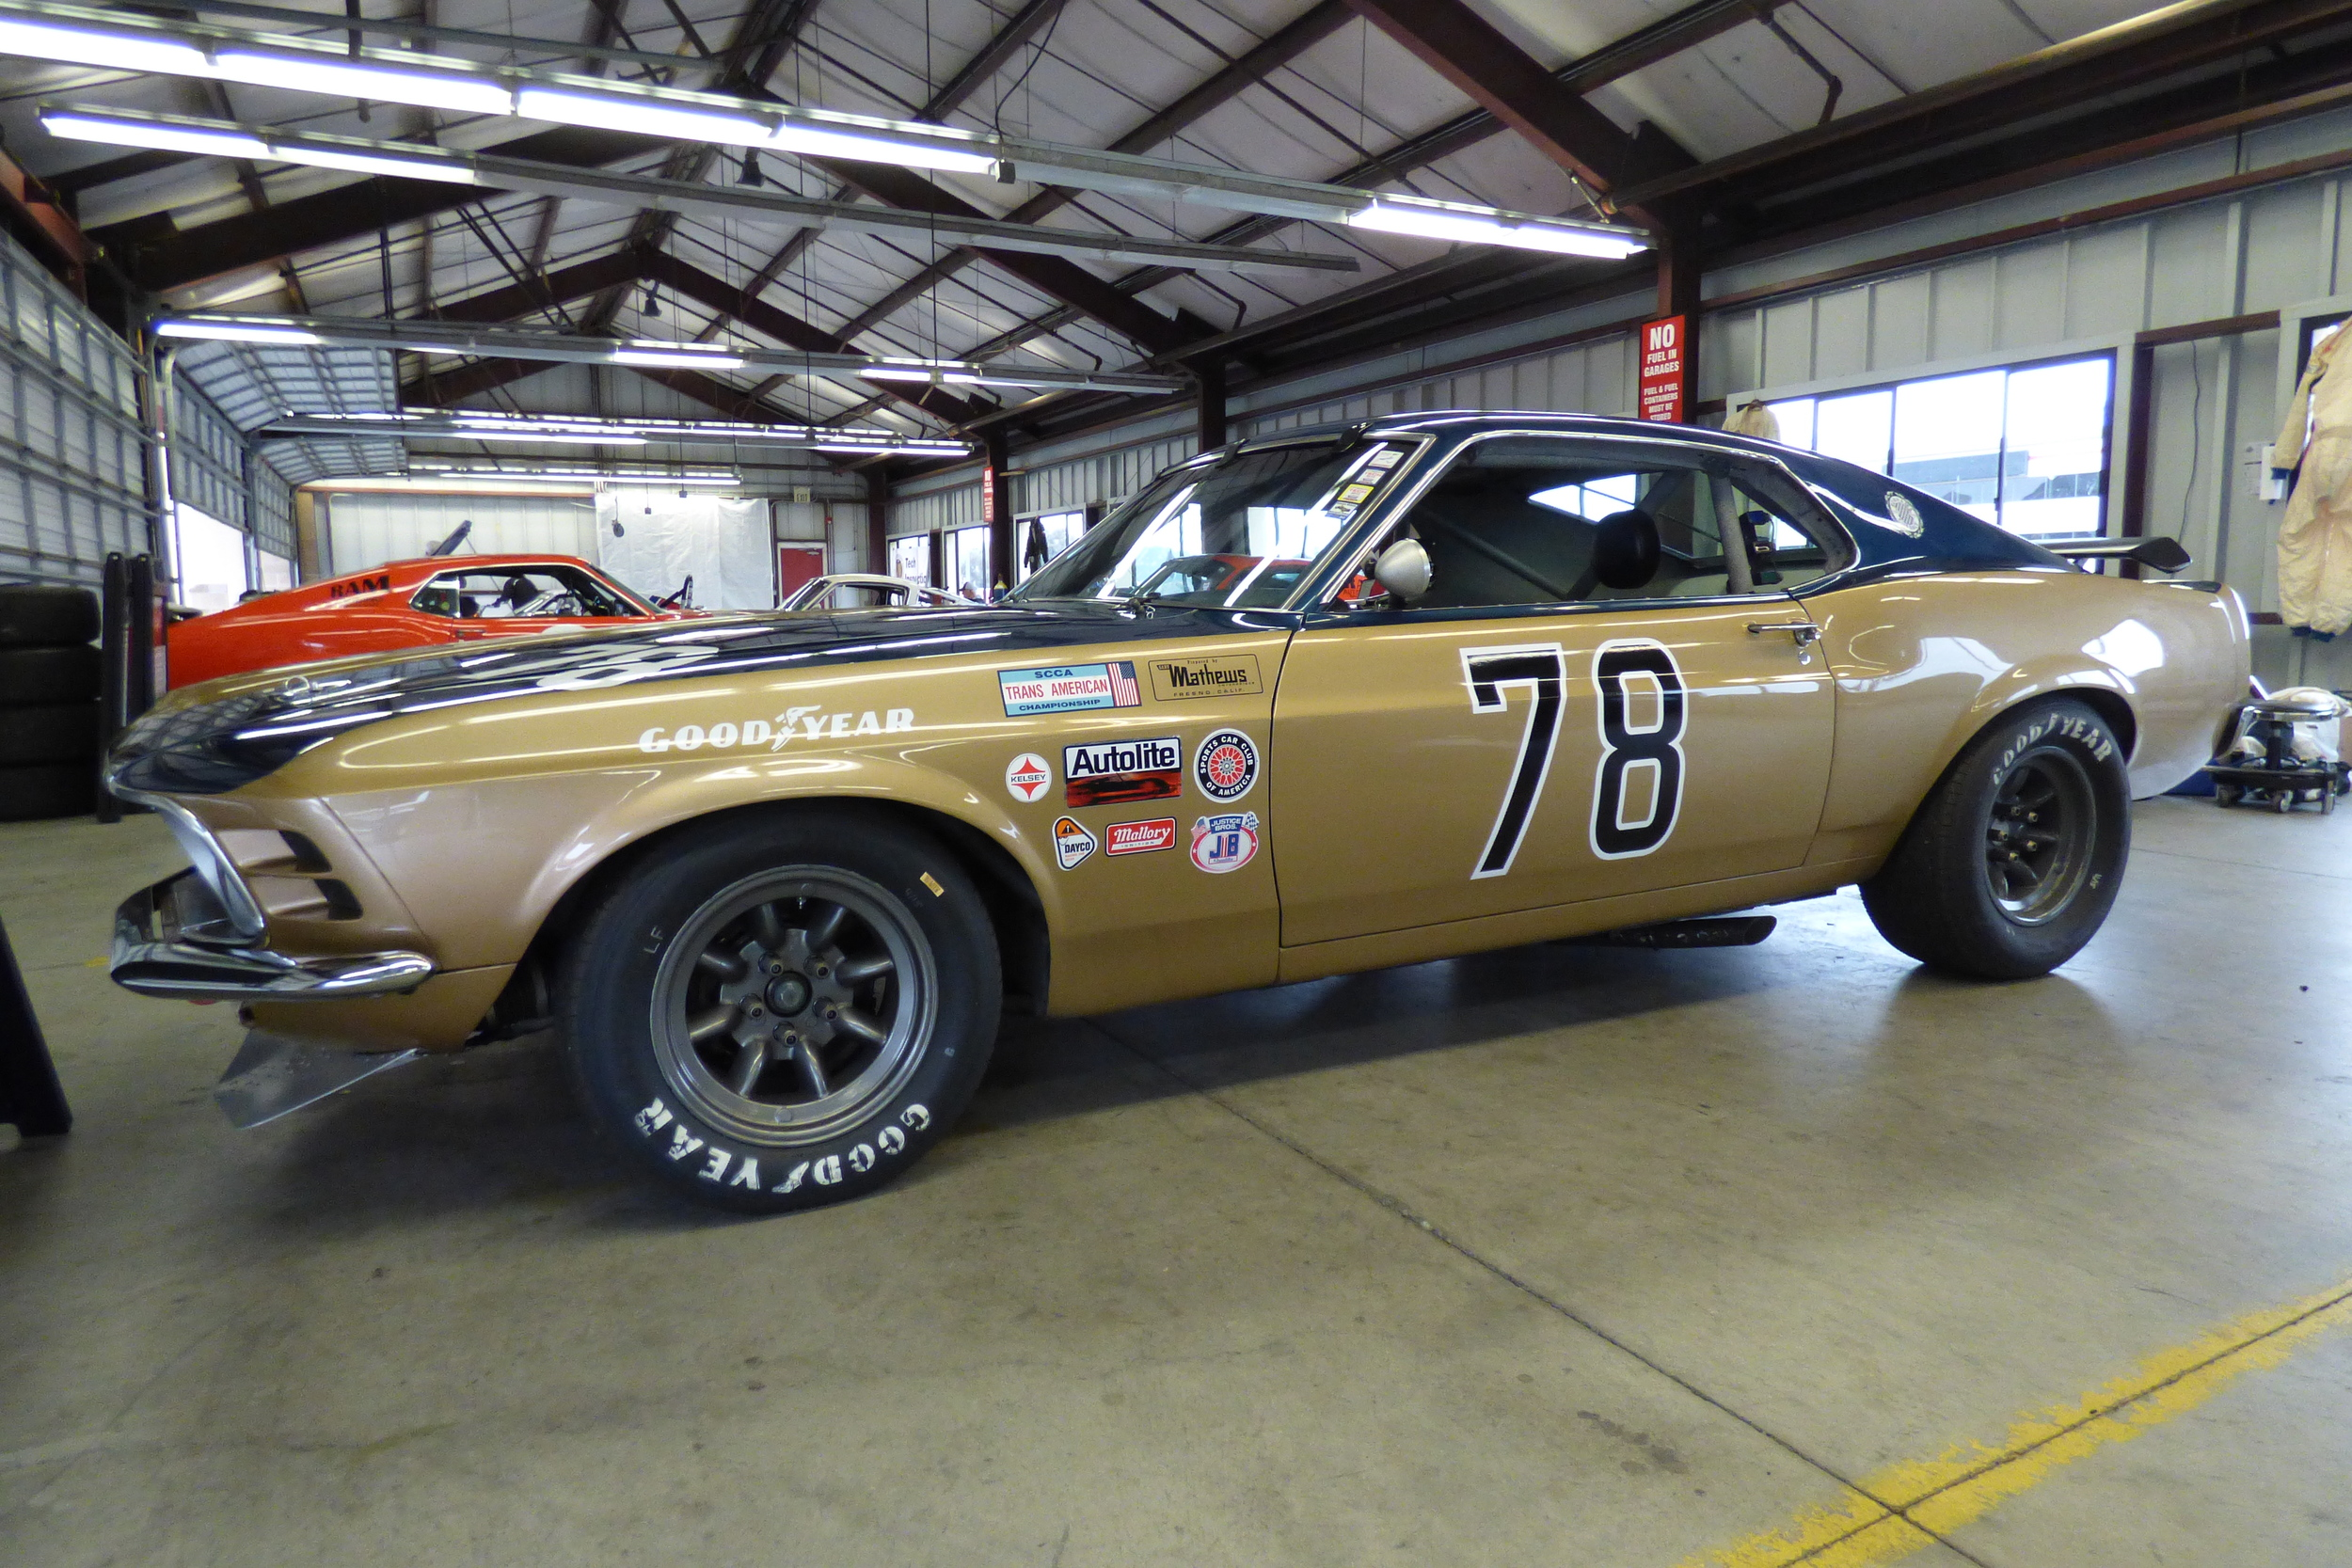 The 1970 Mustang Boss 302 of Michael Martin. Just one of the many competitors in Group 10.